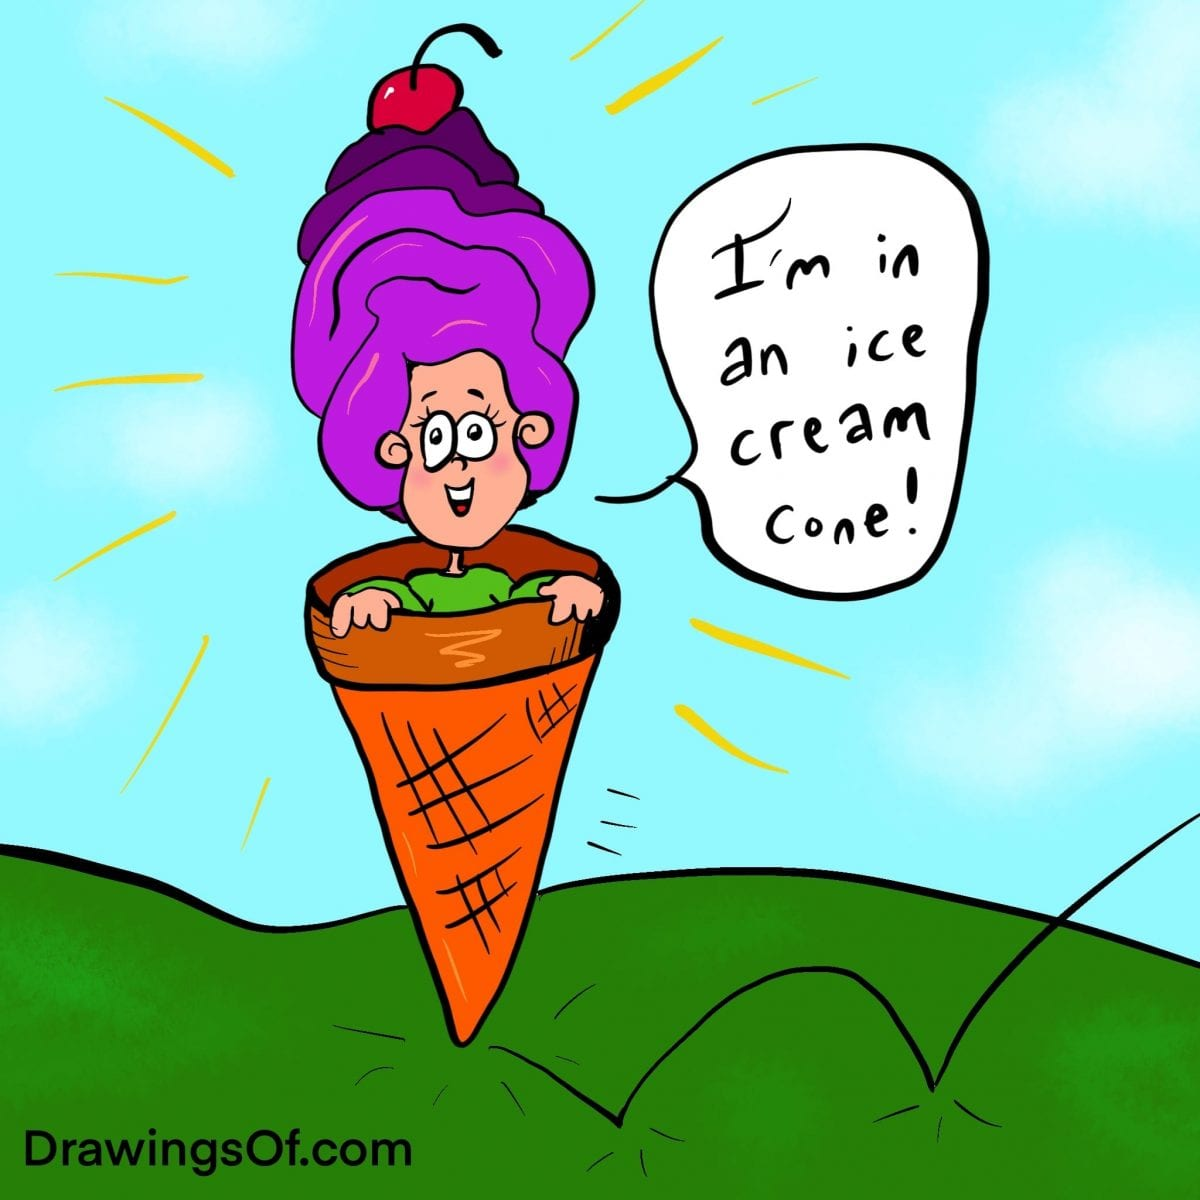 Cartoon person inside ice cream cone with cherry on top